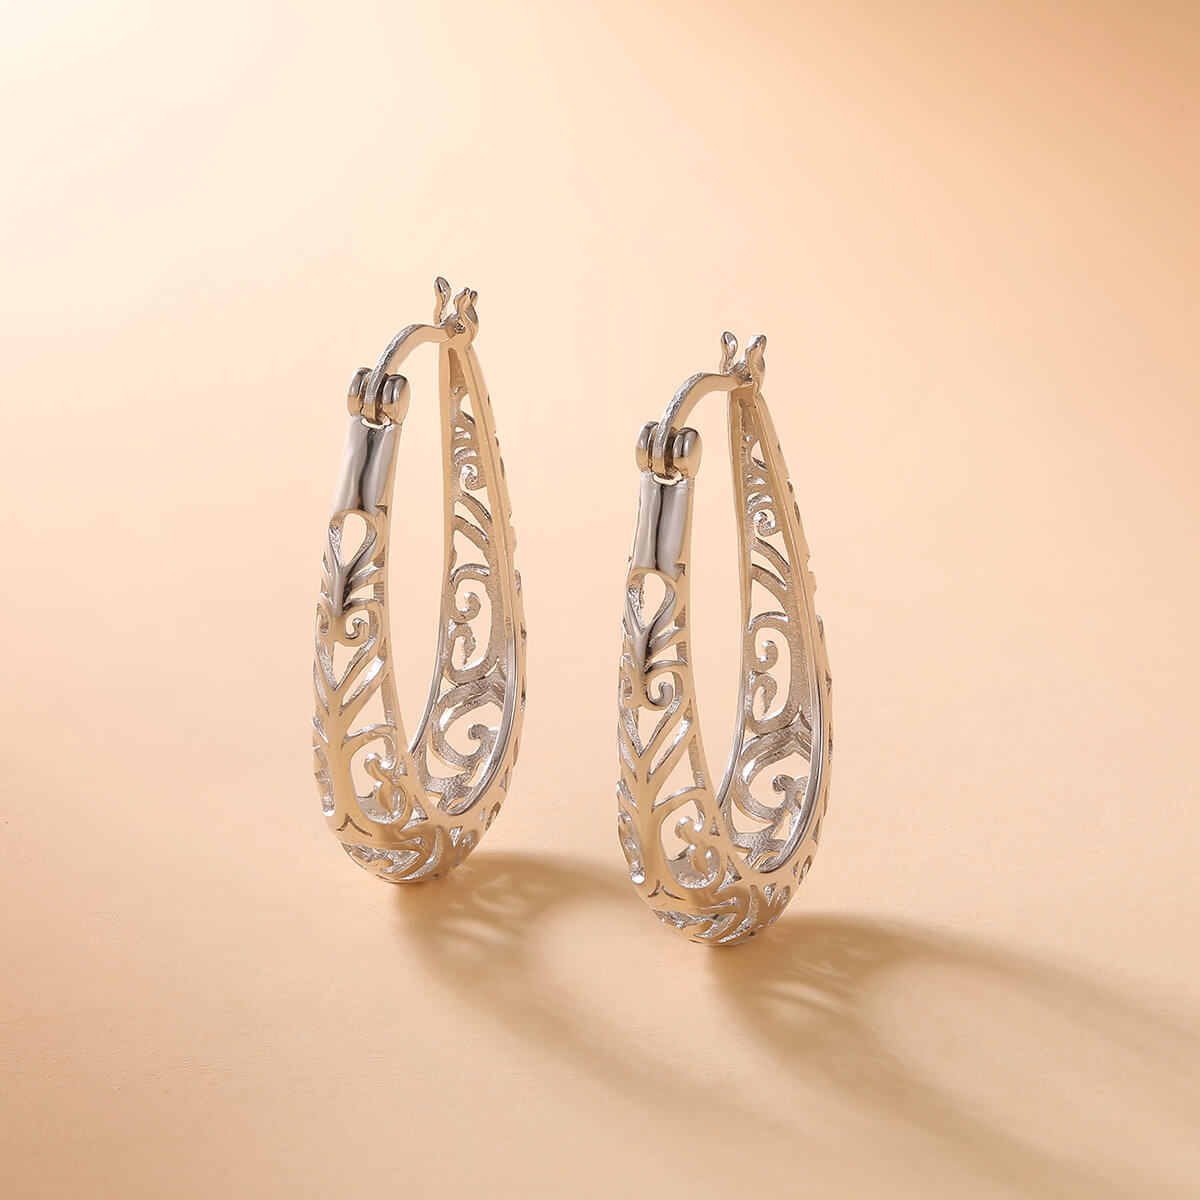 Silver Filigree Hoop Earrings